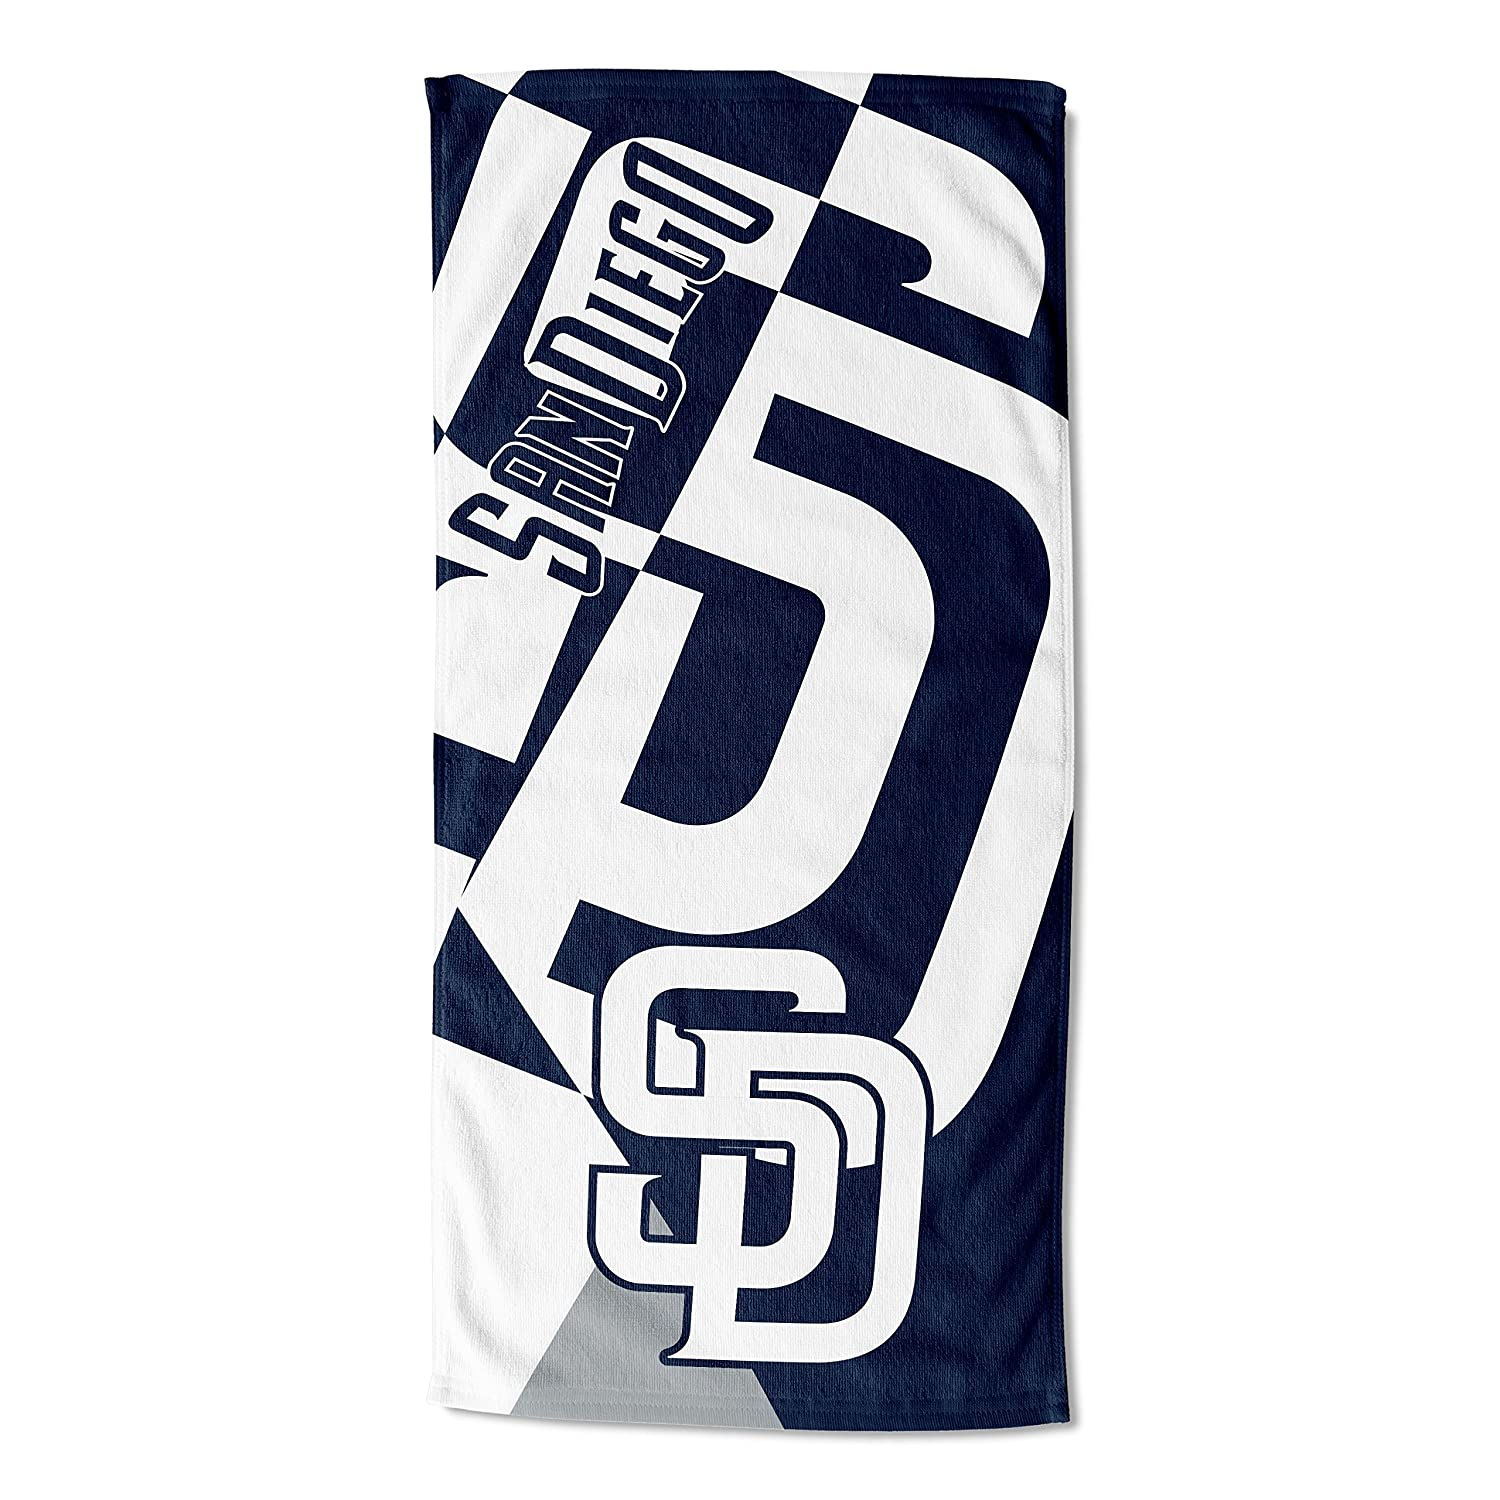 Towels 34 x 72 Officially Licensed MLB Puzzle Oversized Absorbent Beach Towel